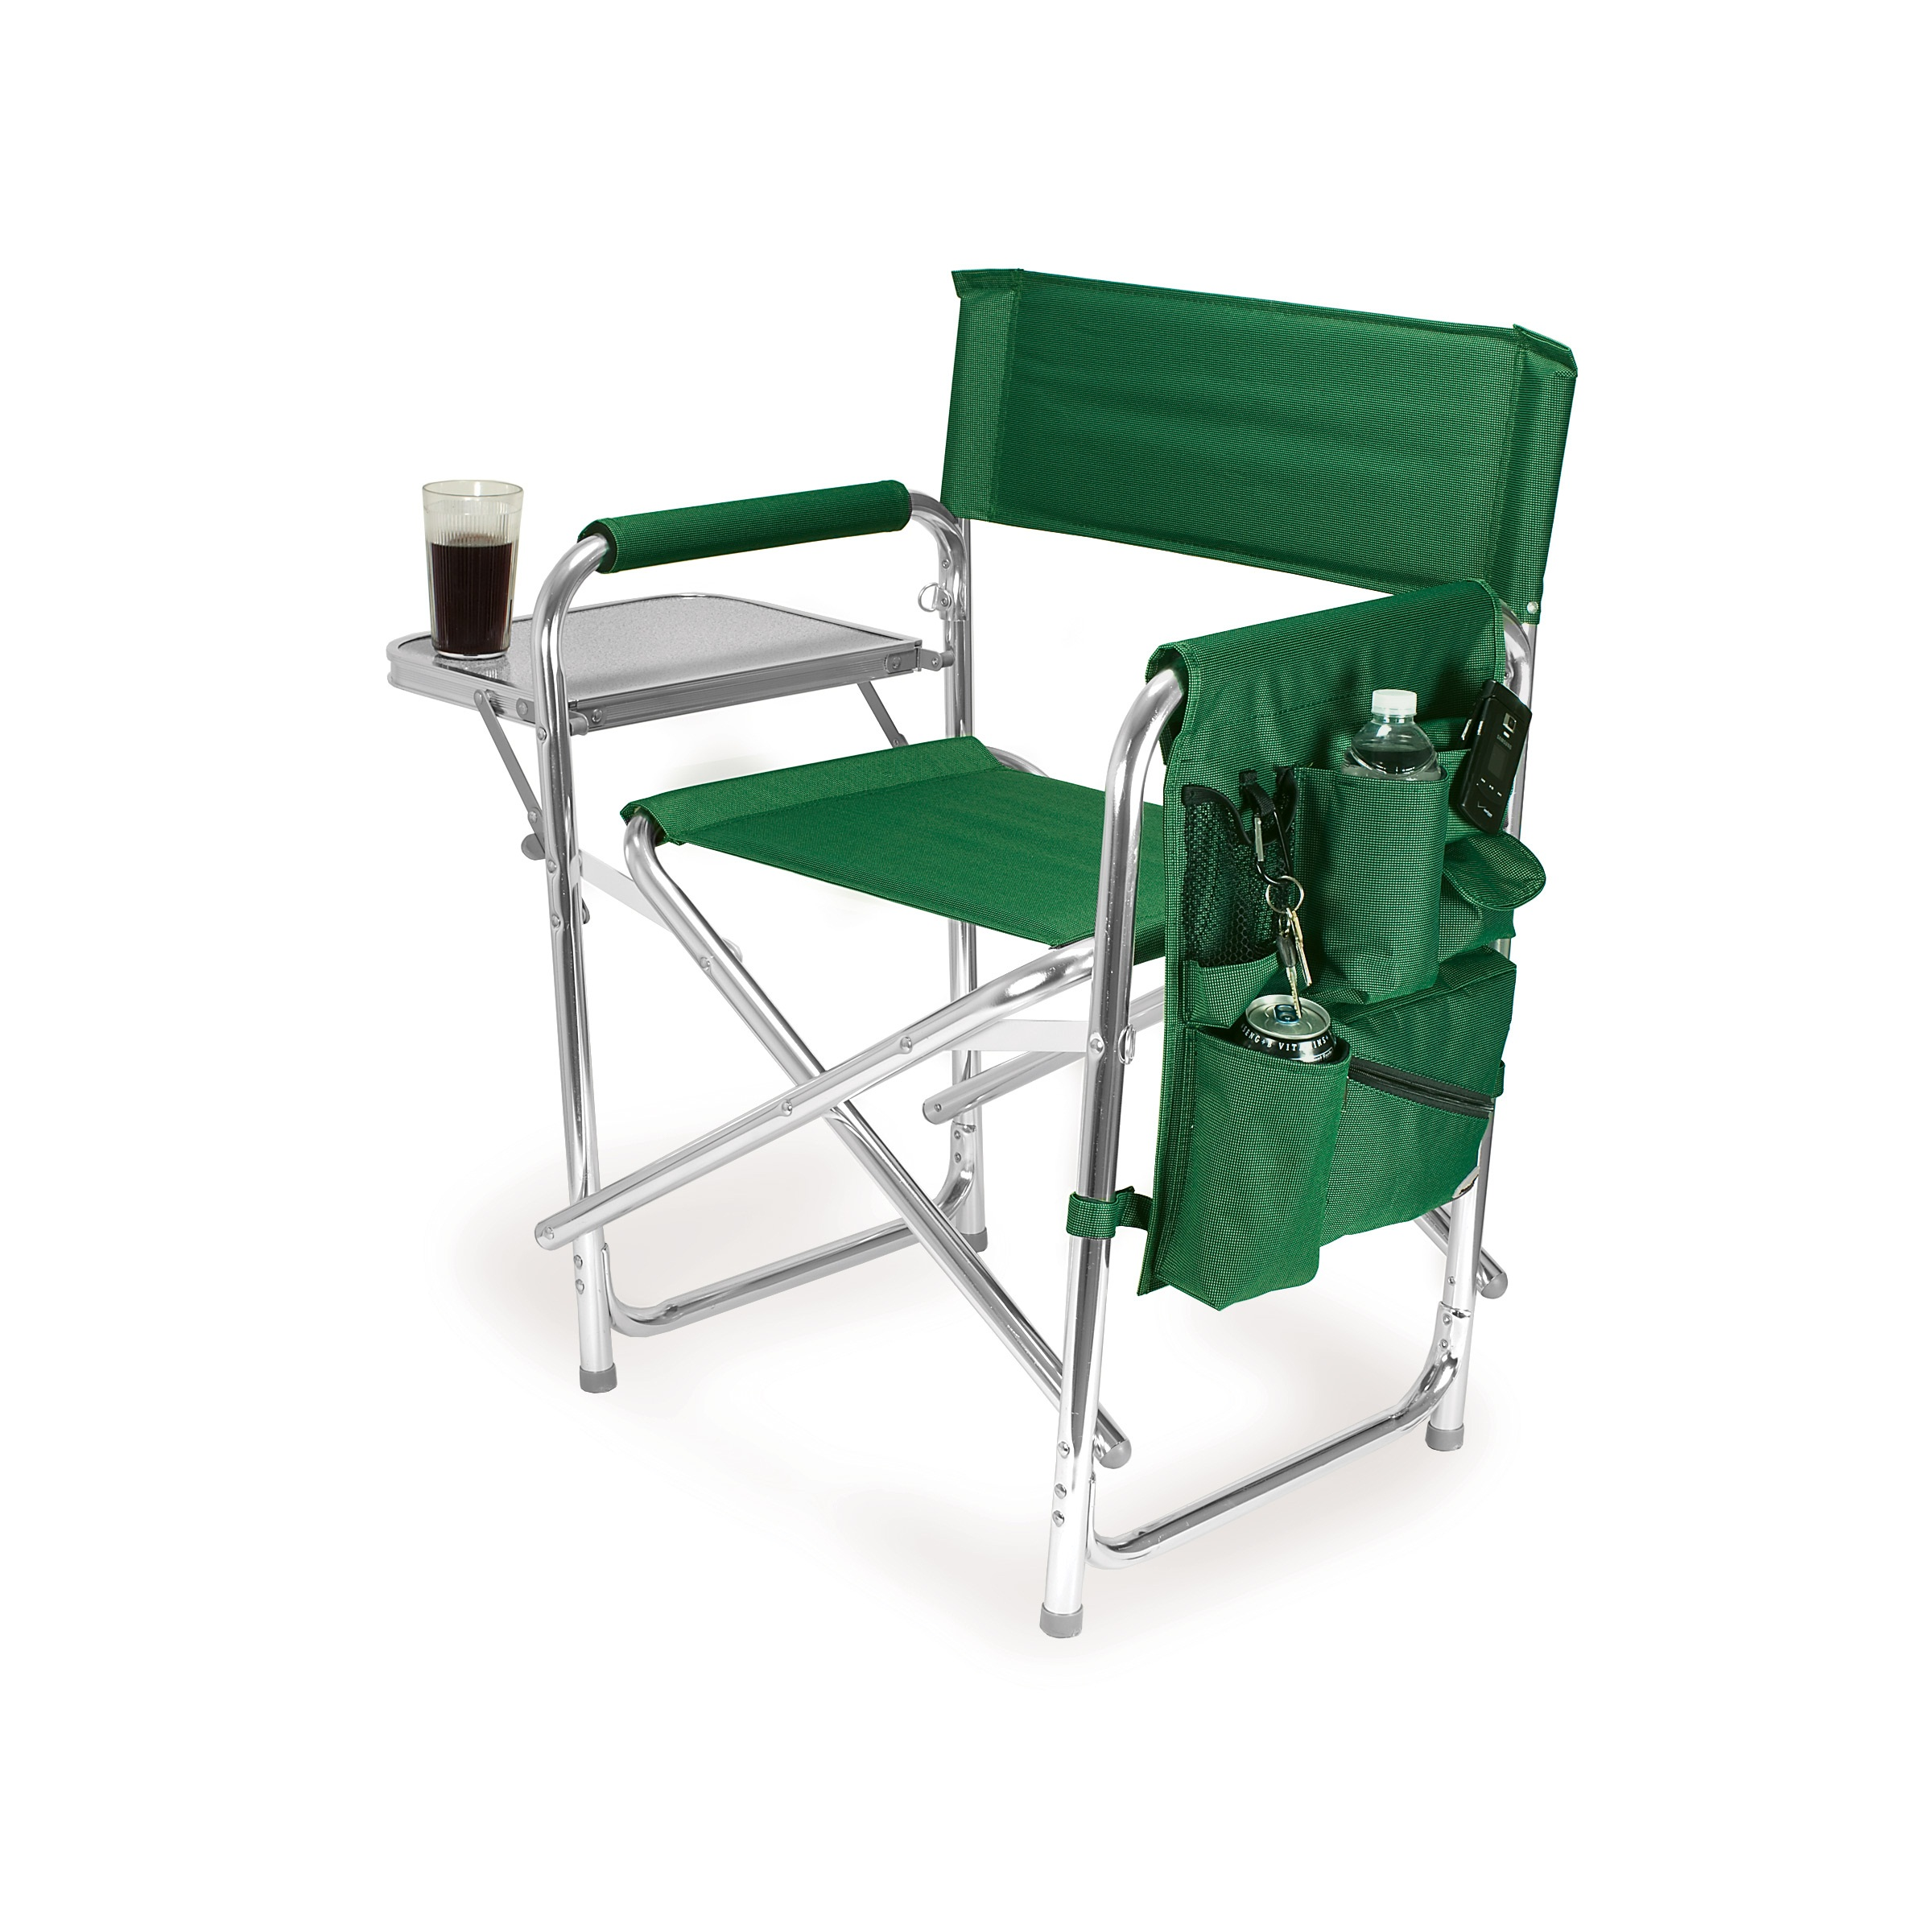 Big W Outdoor Table And Chairs Picnic Time Green Portable Folding Sports Camping Chair